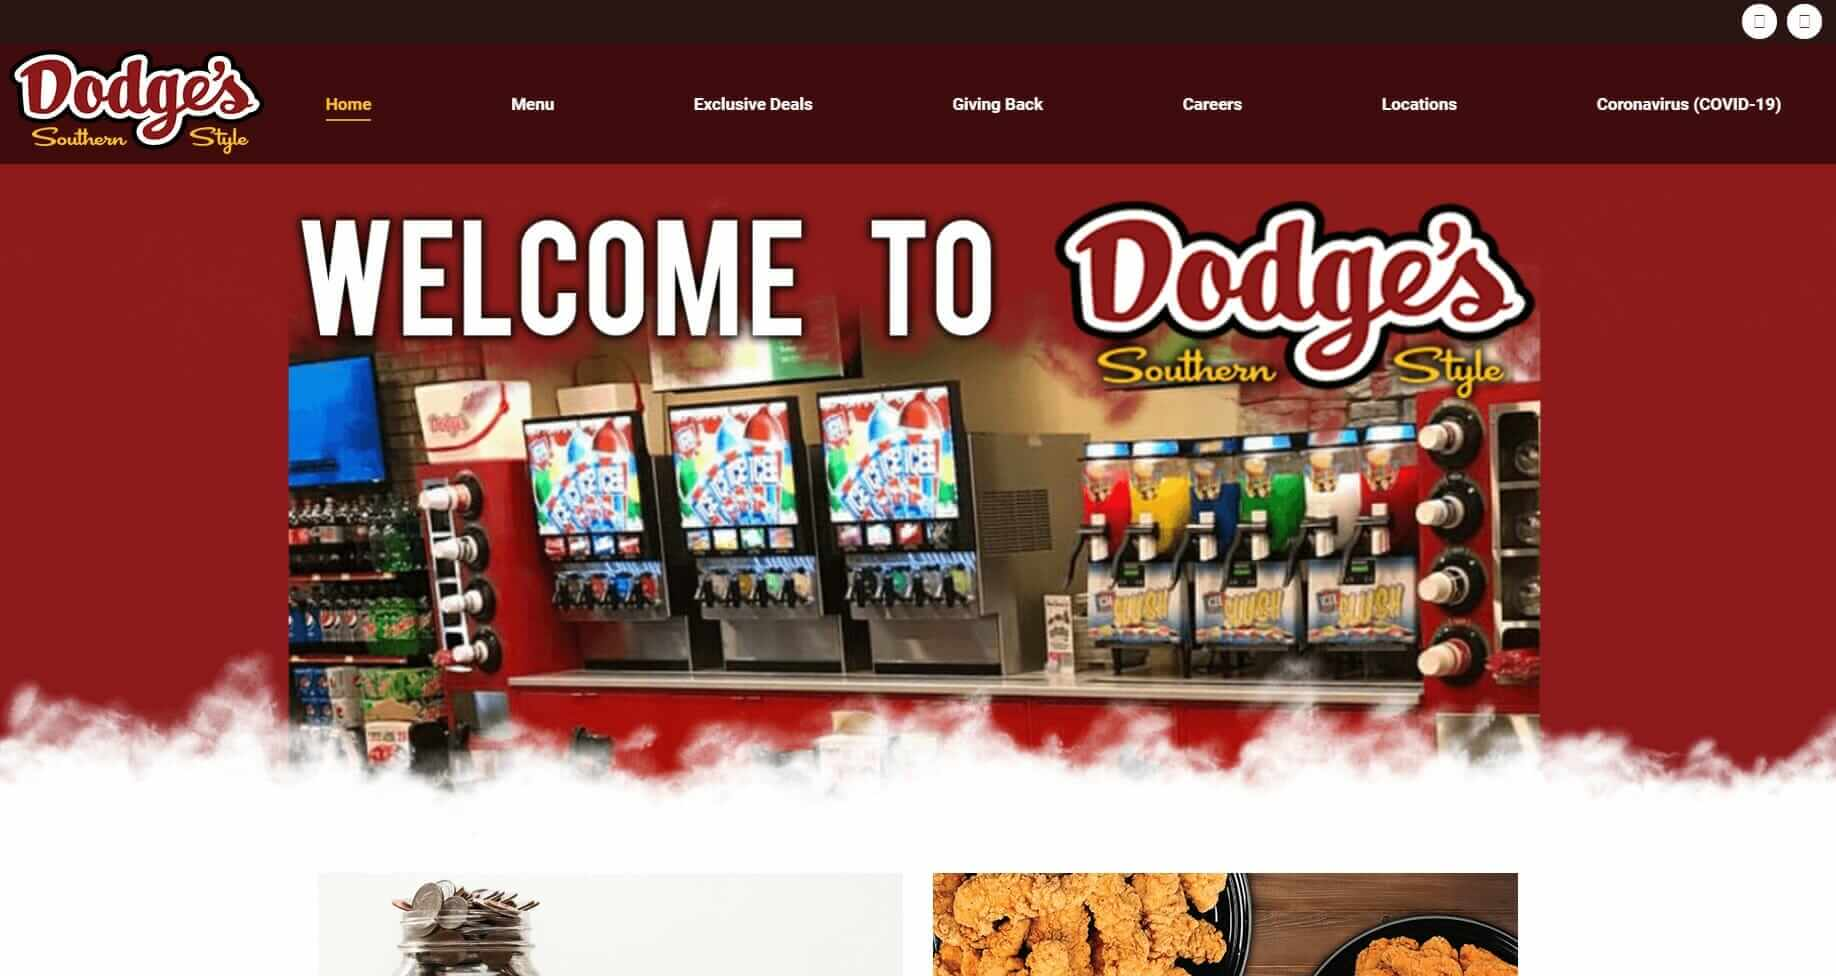 Website and Marketing for convenience stores - Dodge's